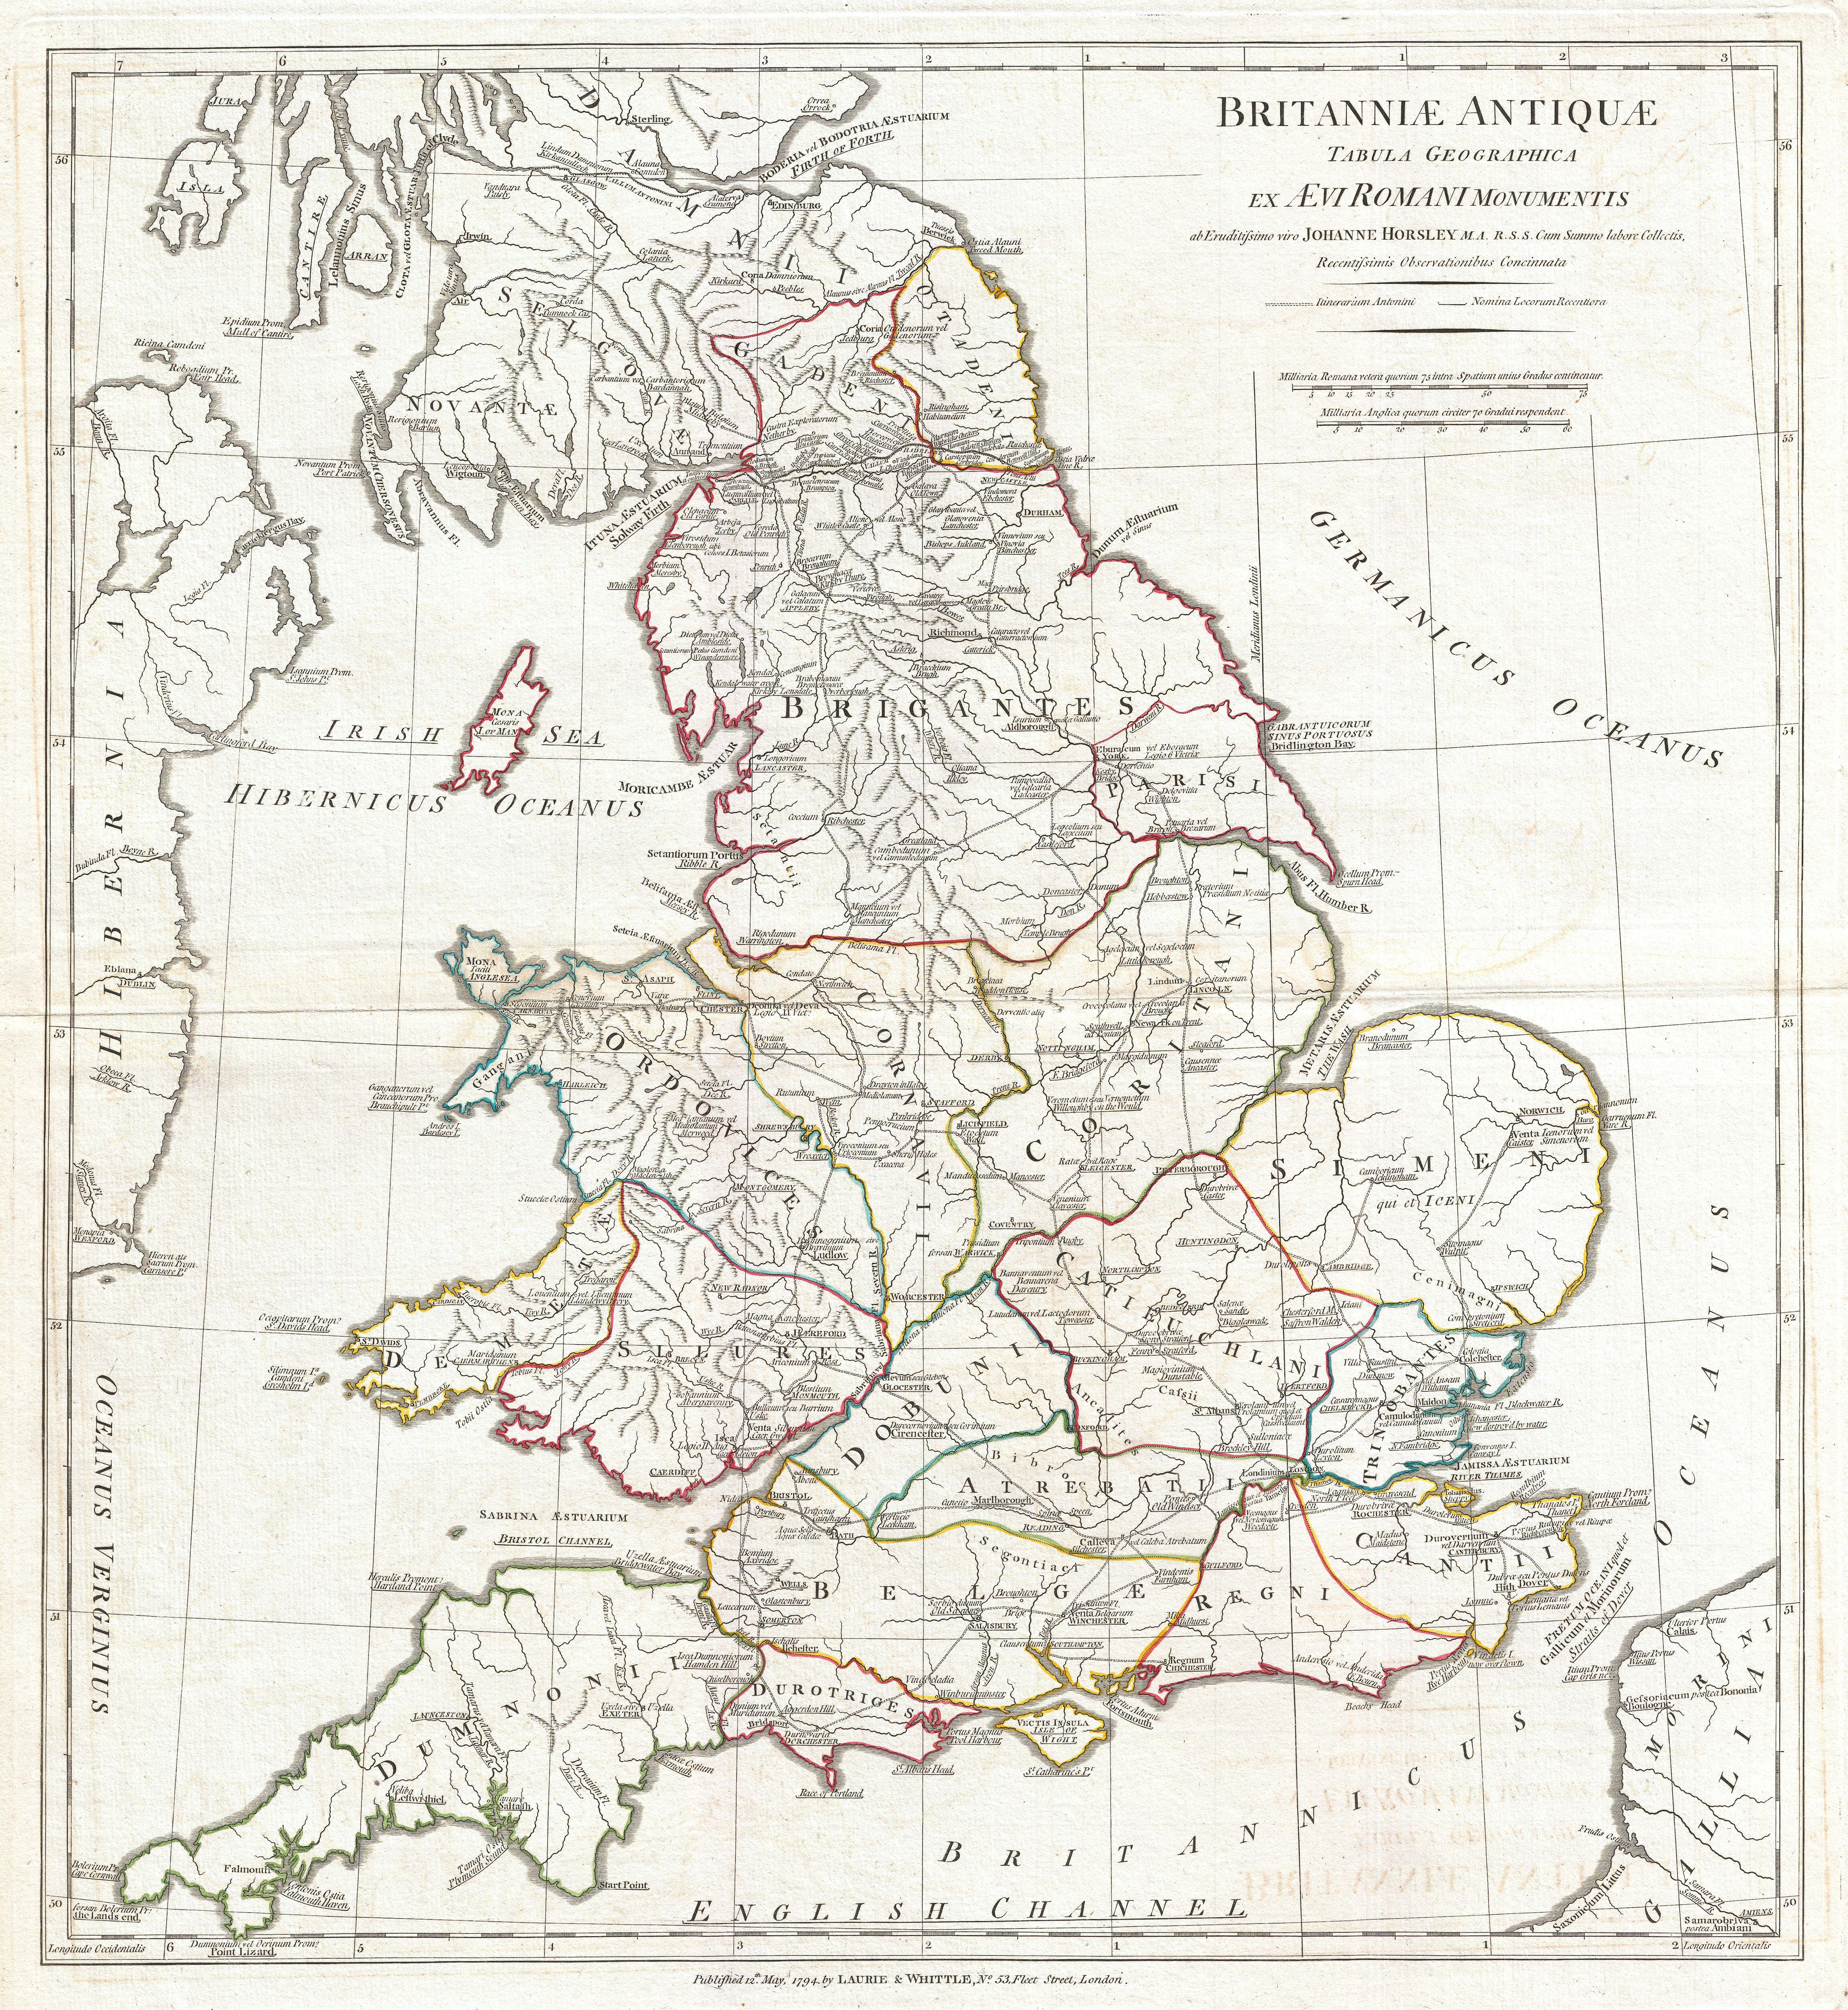 File:1794 Anville Map of England in ancient Roman times